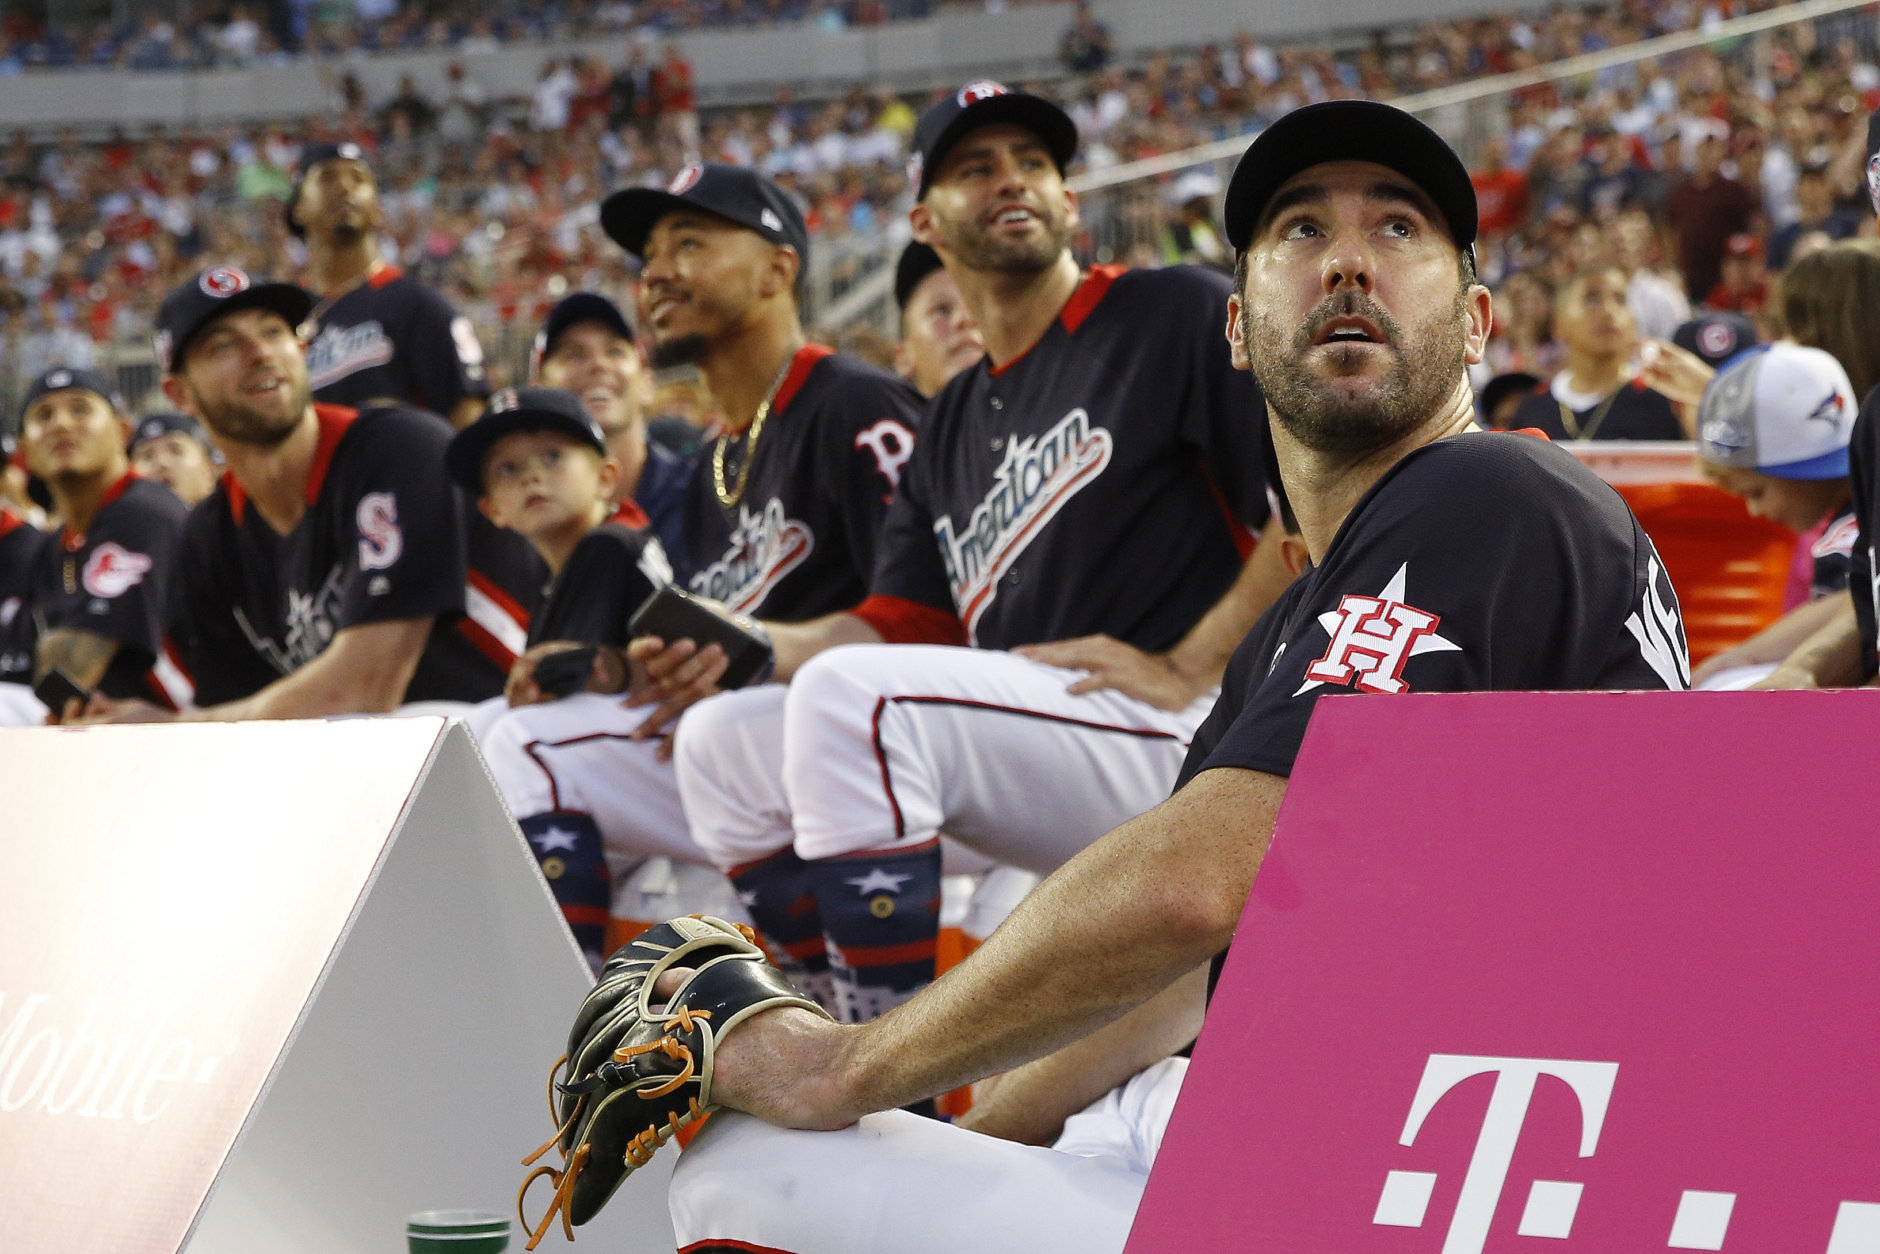 American League, Boston Red Sox pitcher Justin Verlander, right, watches play during the MLB Home Run Derby, at Nationals Park, Monday, July 16, 2018 in Washington. The 89th MLB baseball All-Star Game will be played Tuesday. (AP Photo/Patrick Semansky)